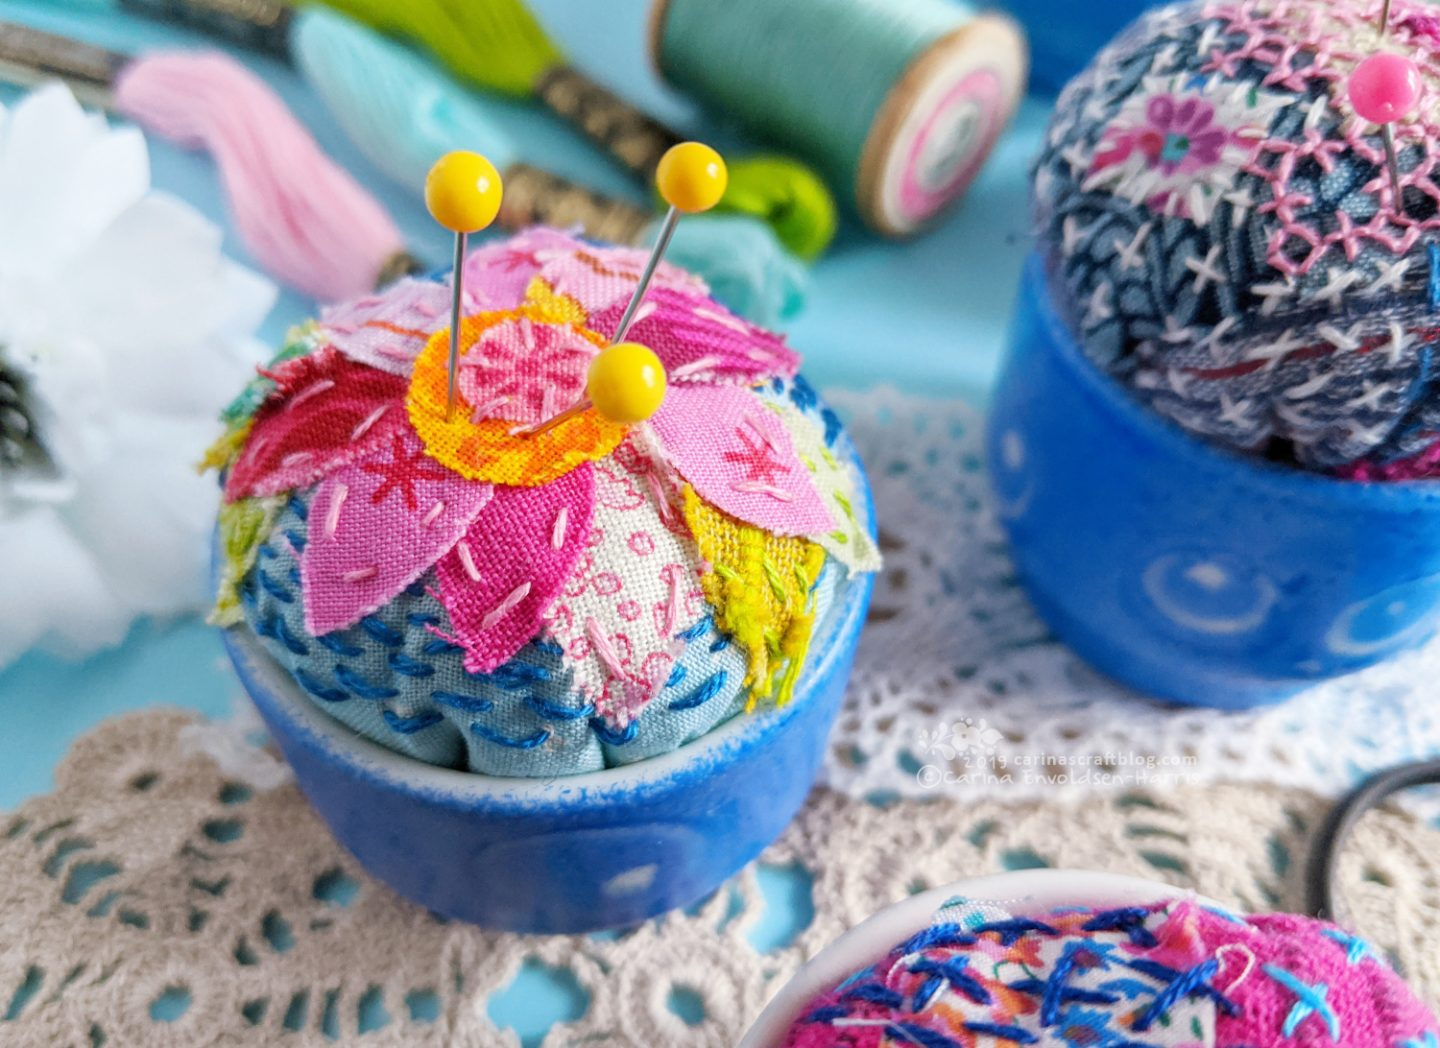 Egg cups turned into pincushions. Decorated with fabric scraps and stitching.